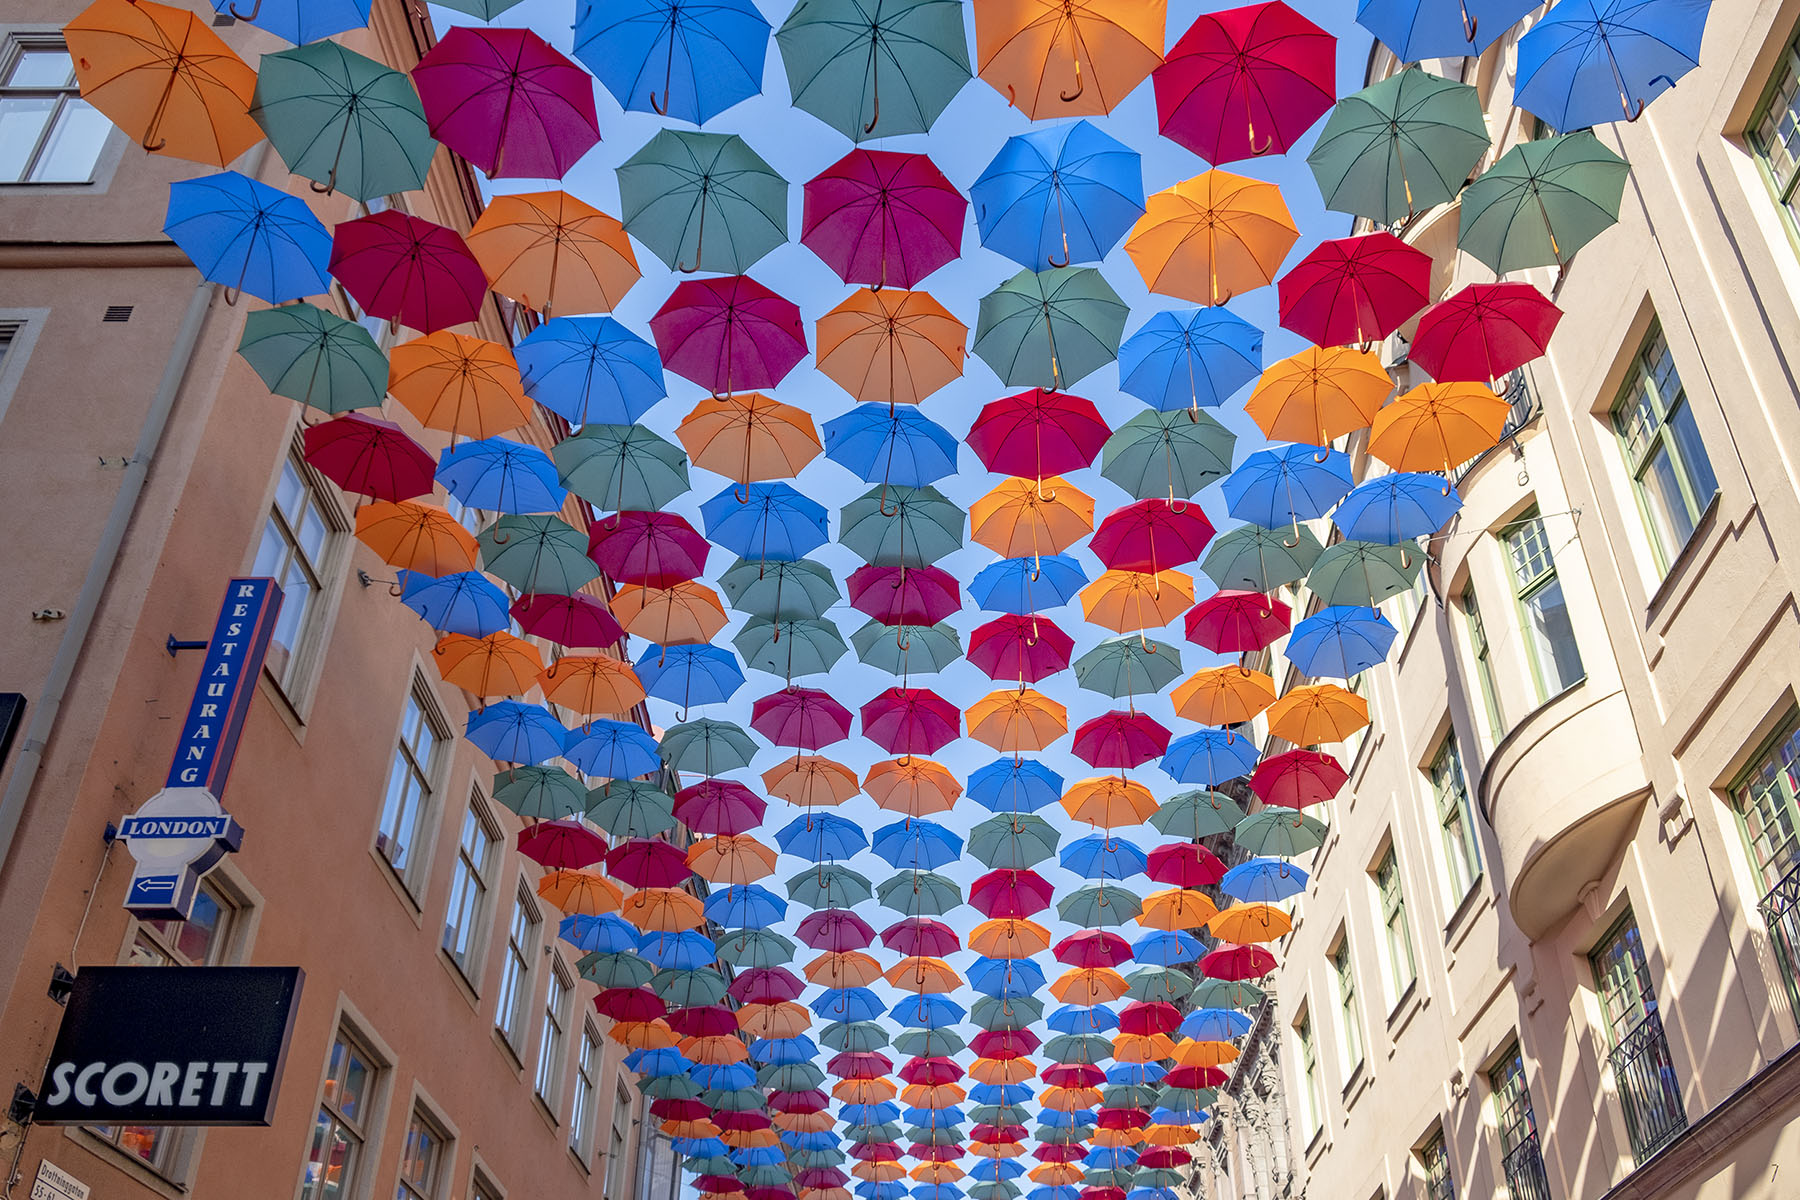 Umbrella Sky Project Stockholm